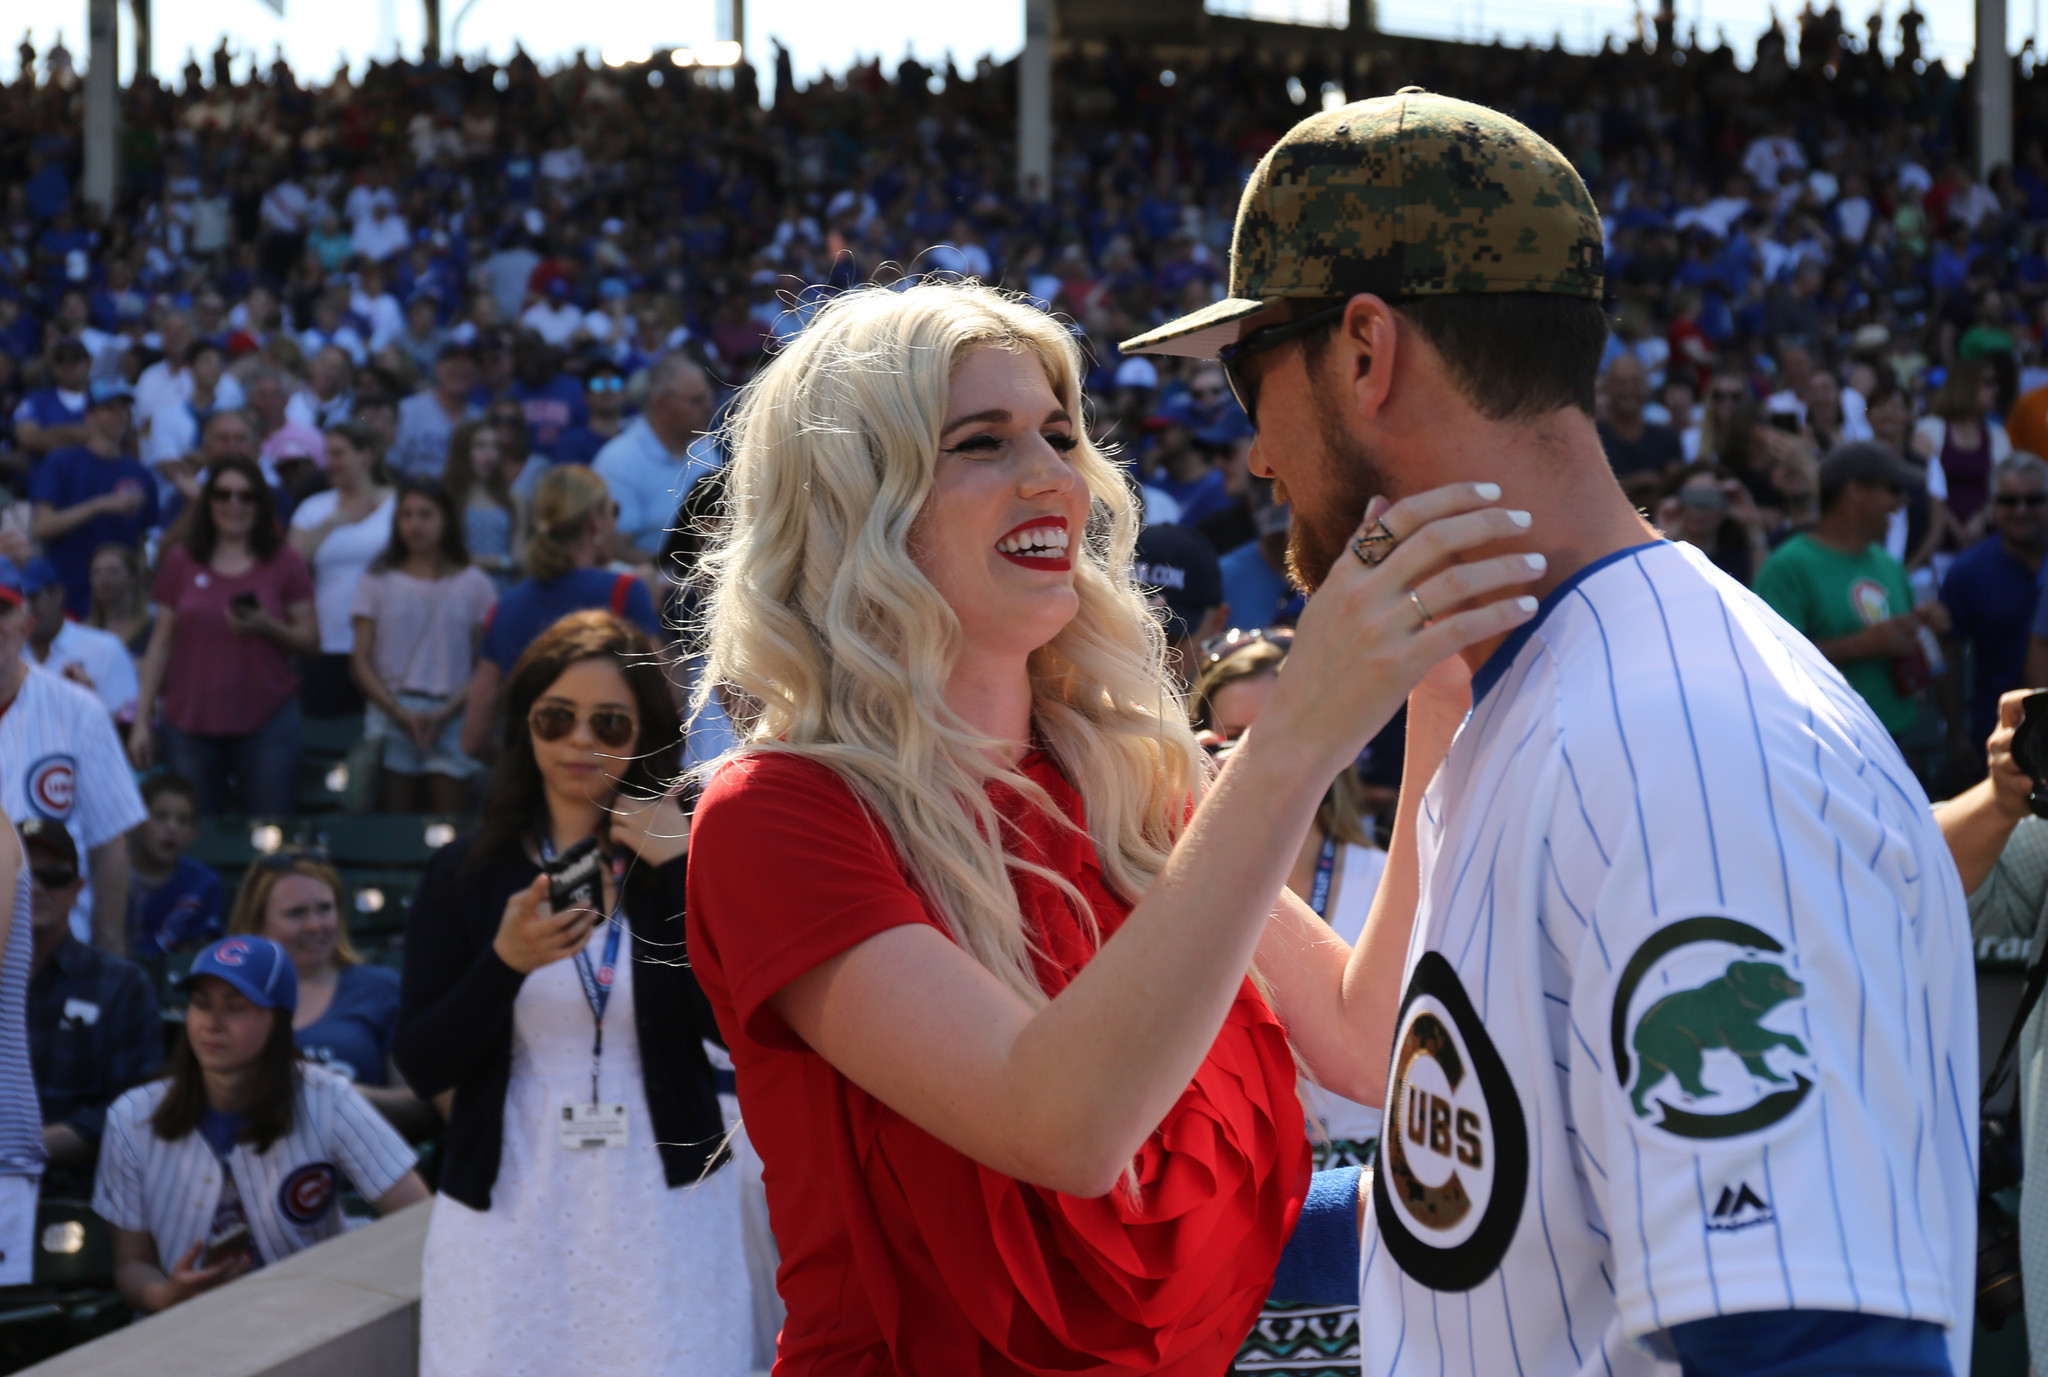 Ct-ben-zobrist-bennie-and-the-jets-cover-song-20161010